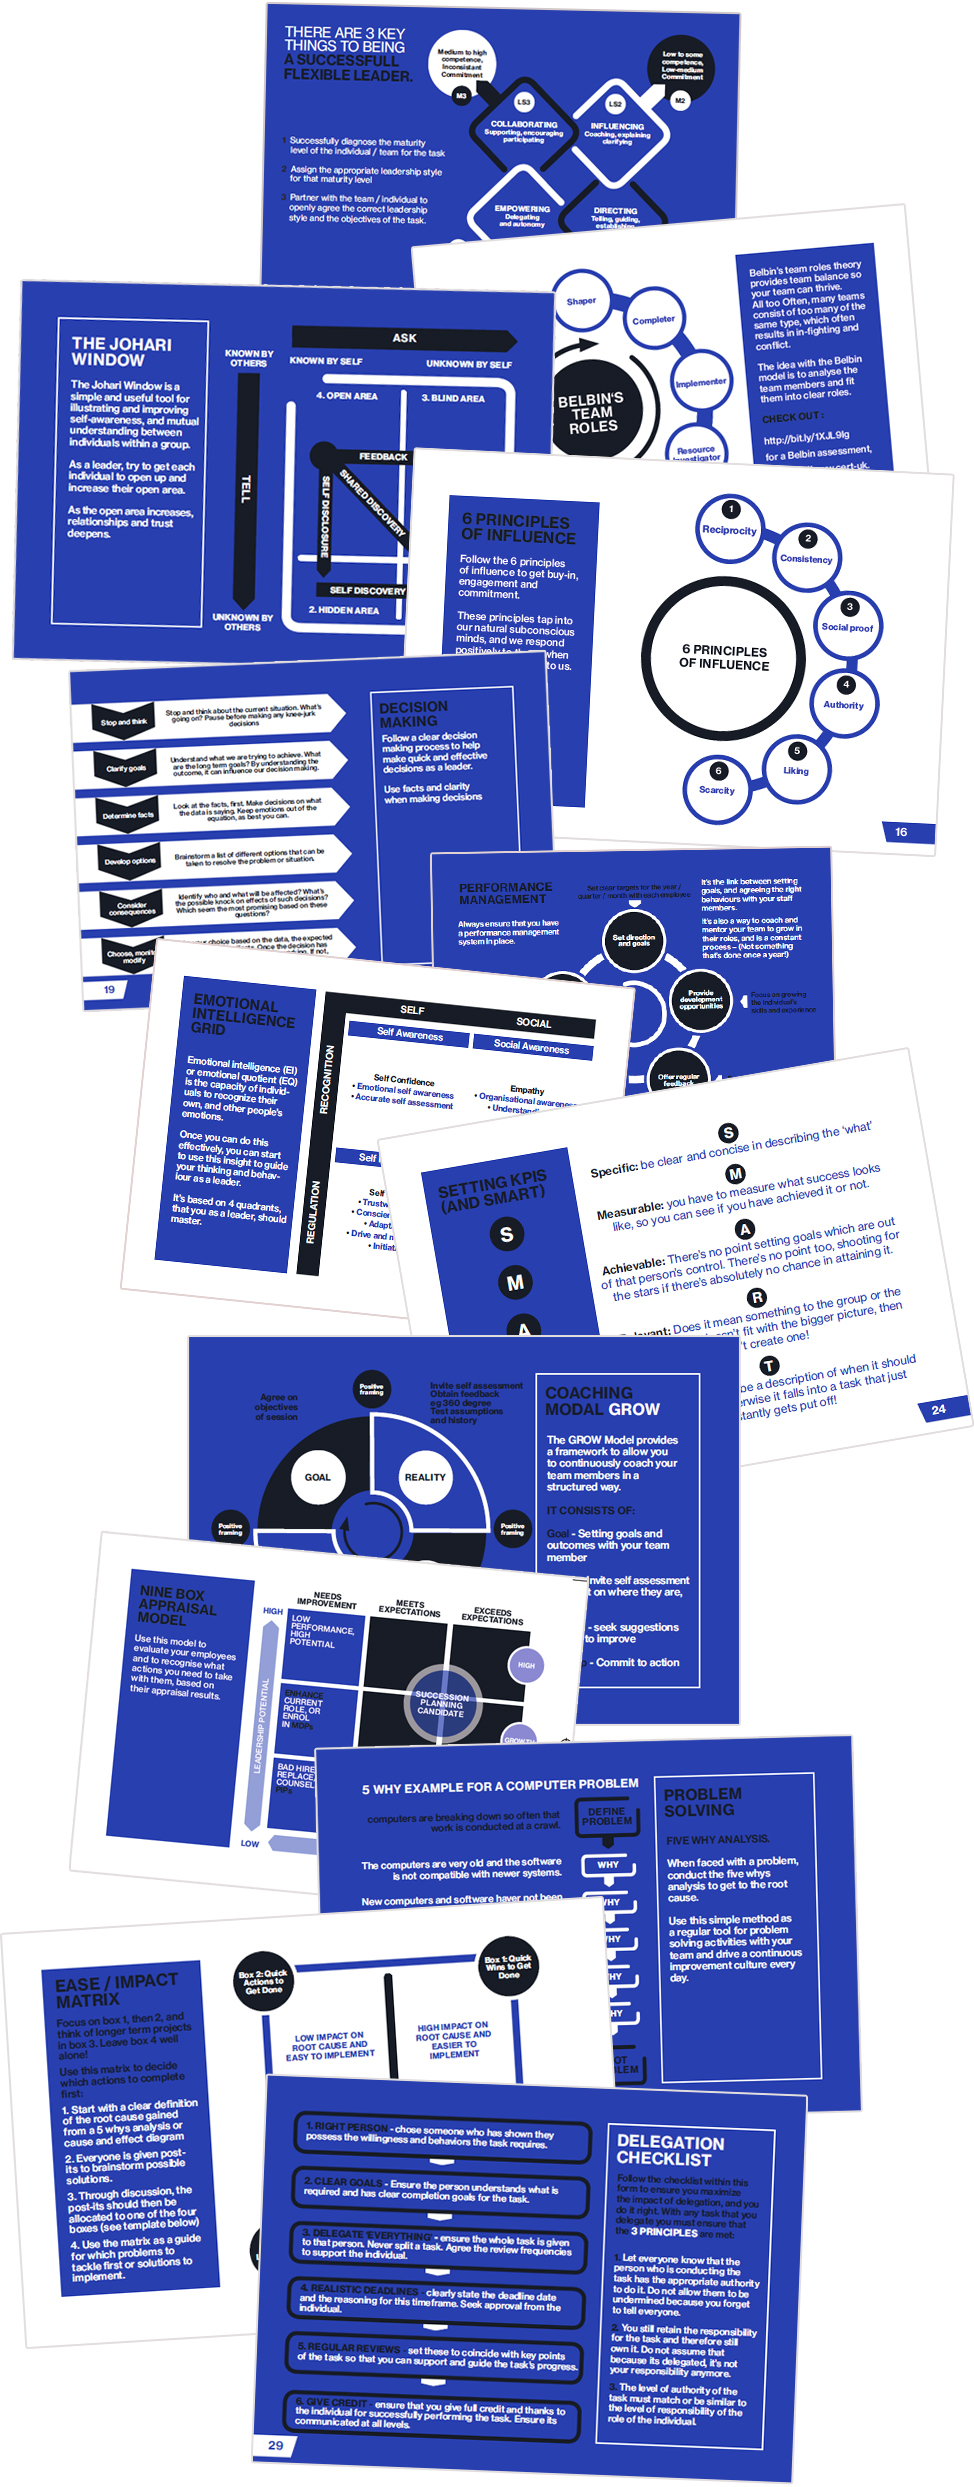 The Handouts - snapshot of some of the images